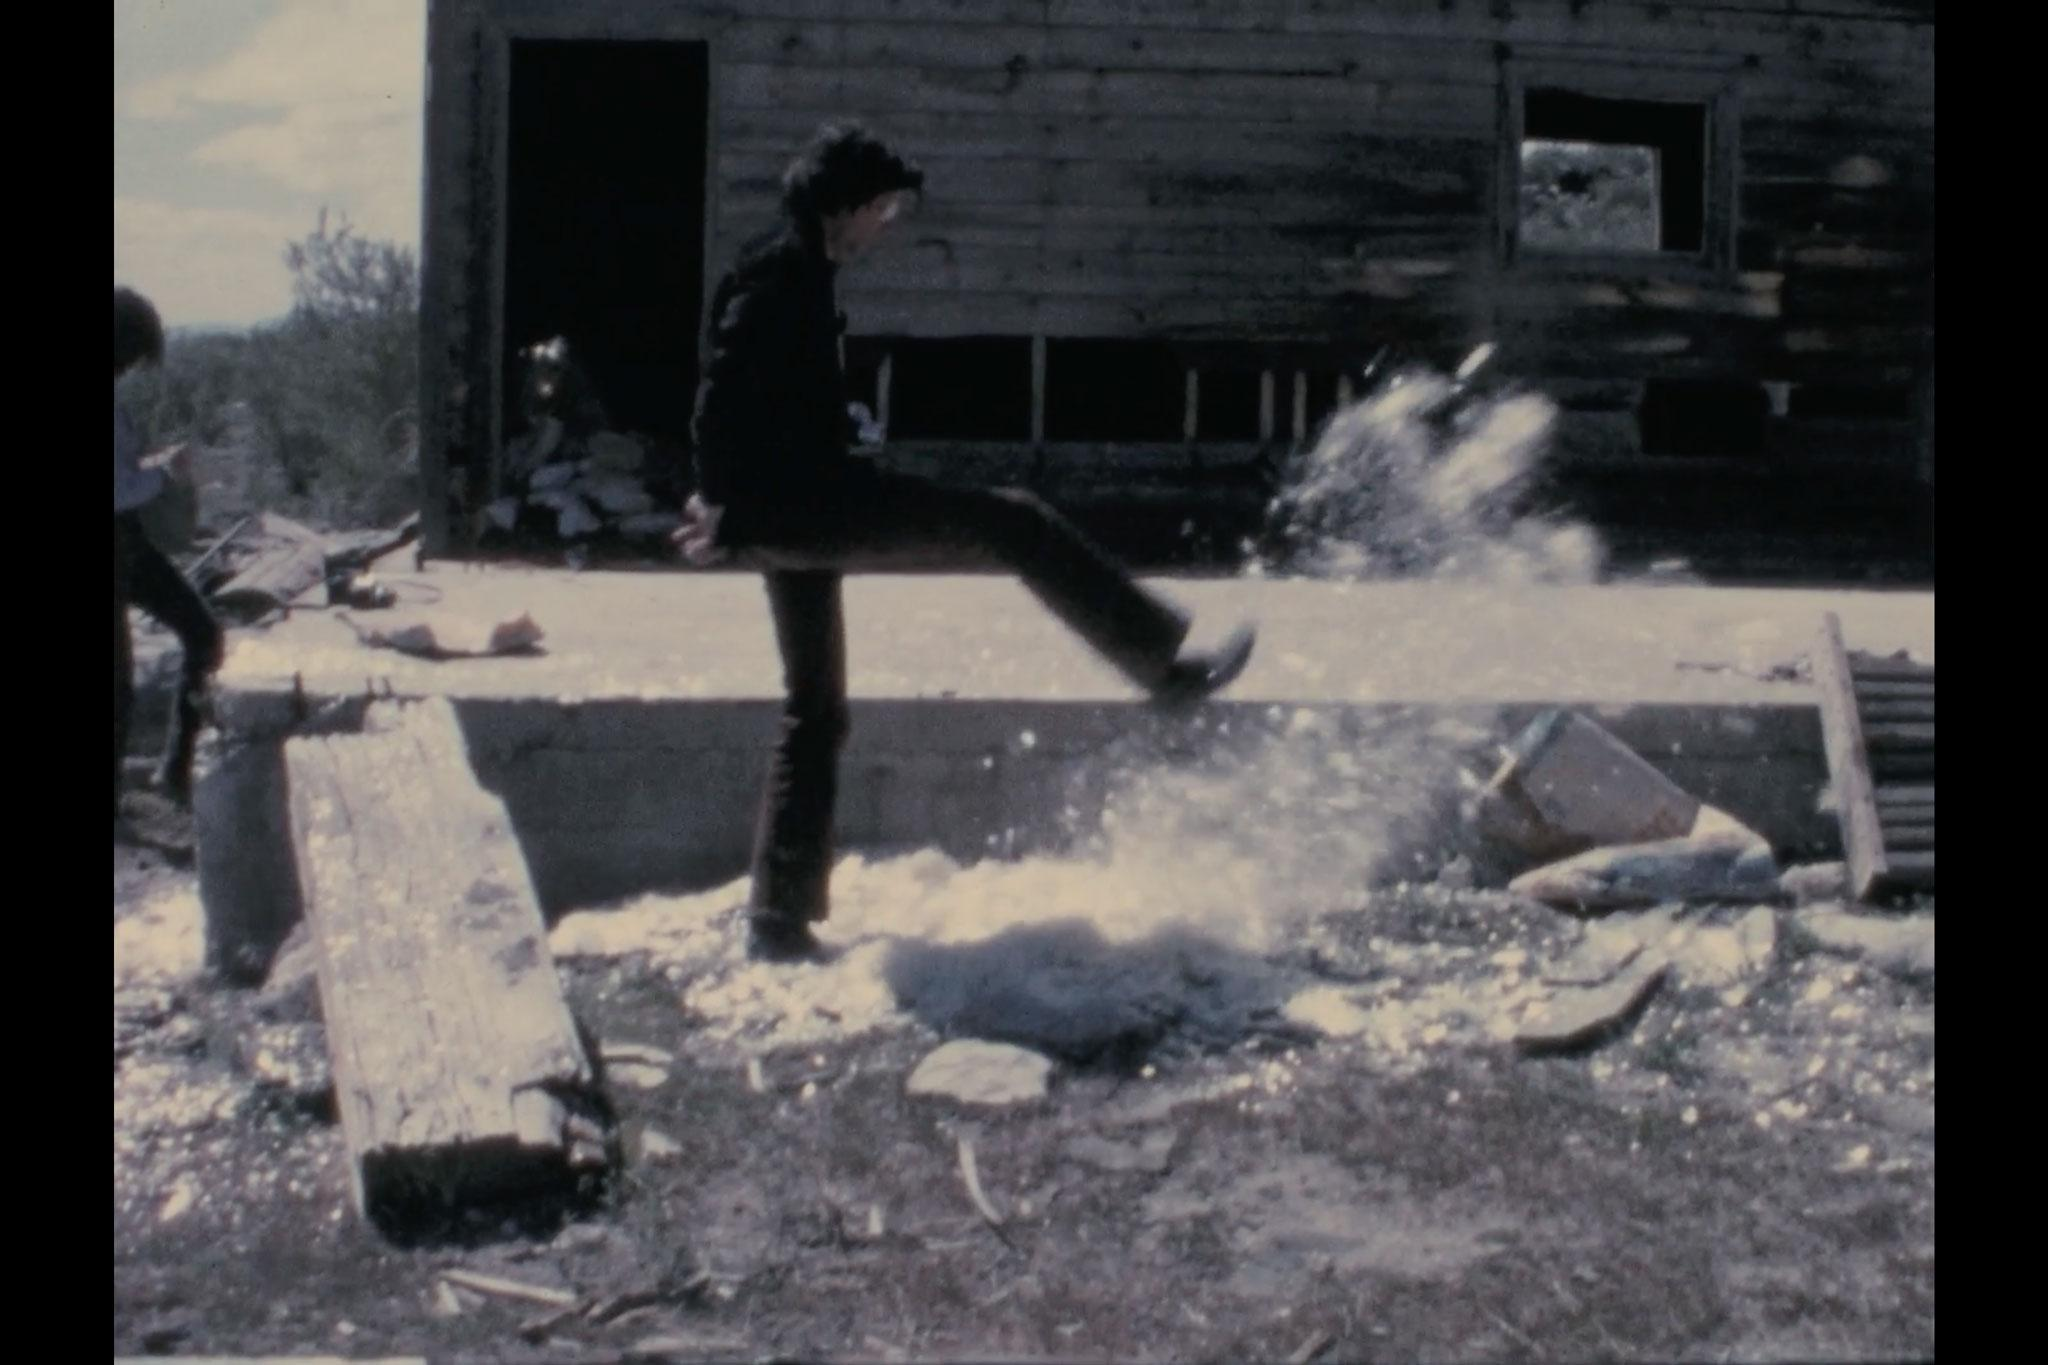 a man kicks a pile of mica and the mica spreads out and flies through the air